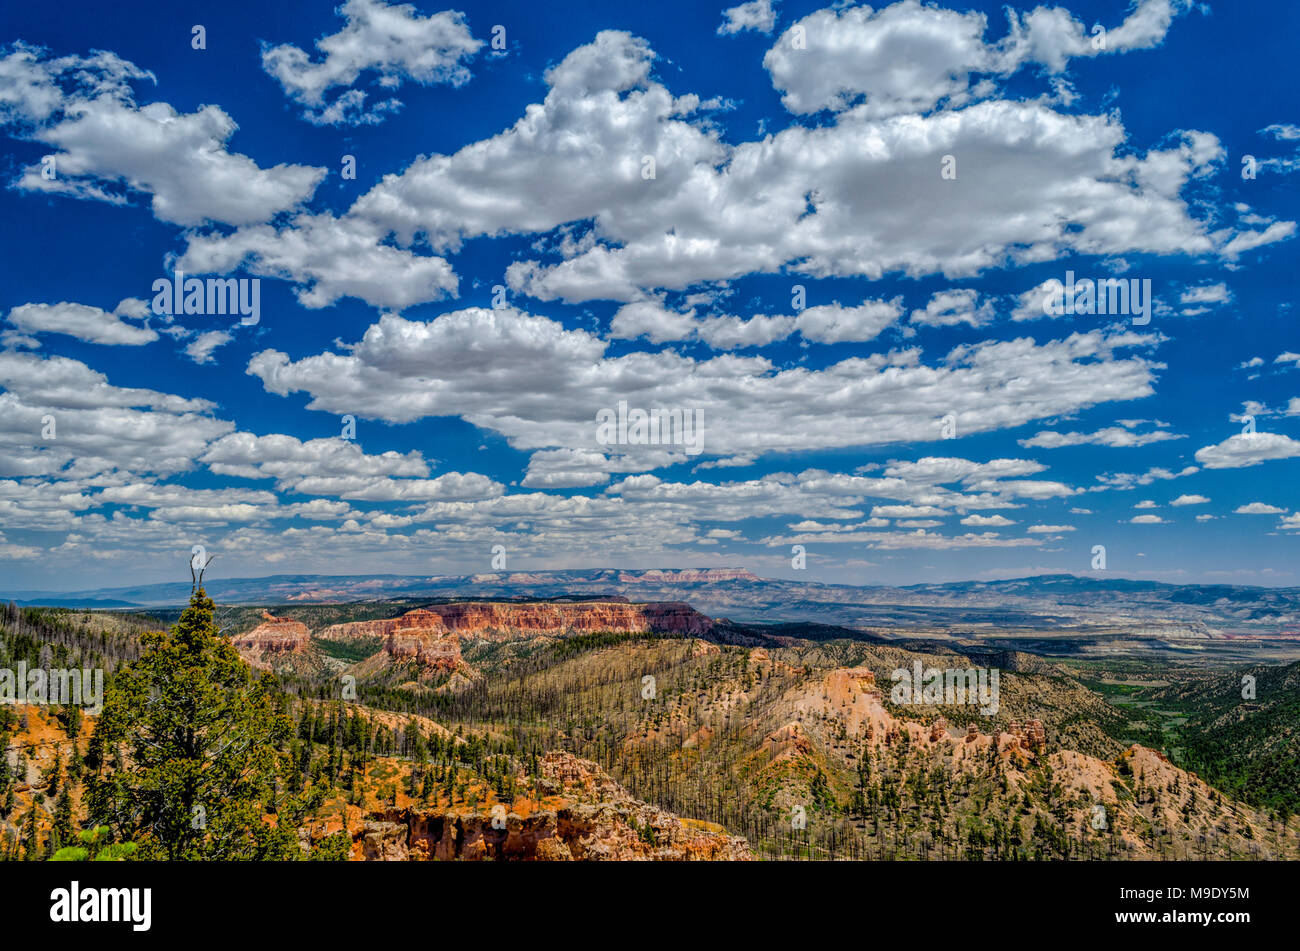 Overlooking orange mountains and green Valley under blue sky with white fluffy clouds. - Stock Image